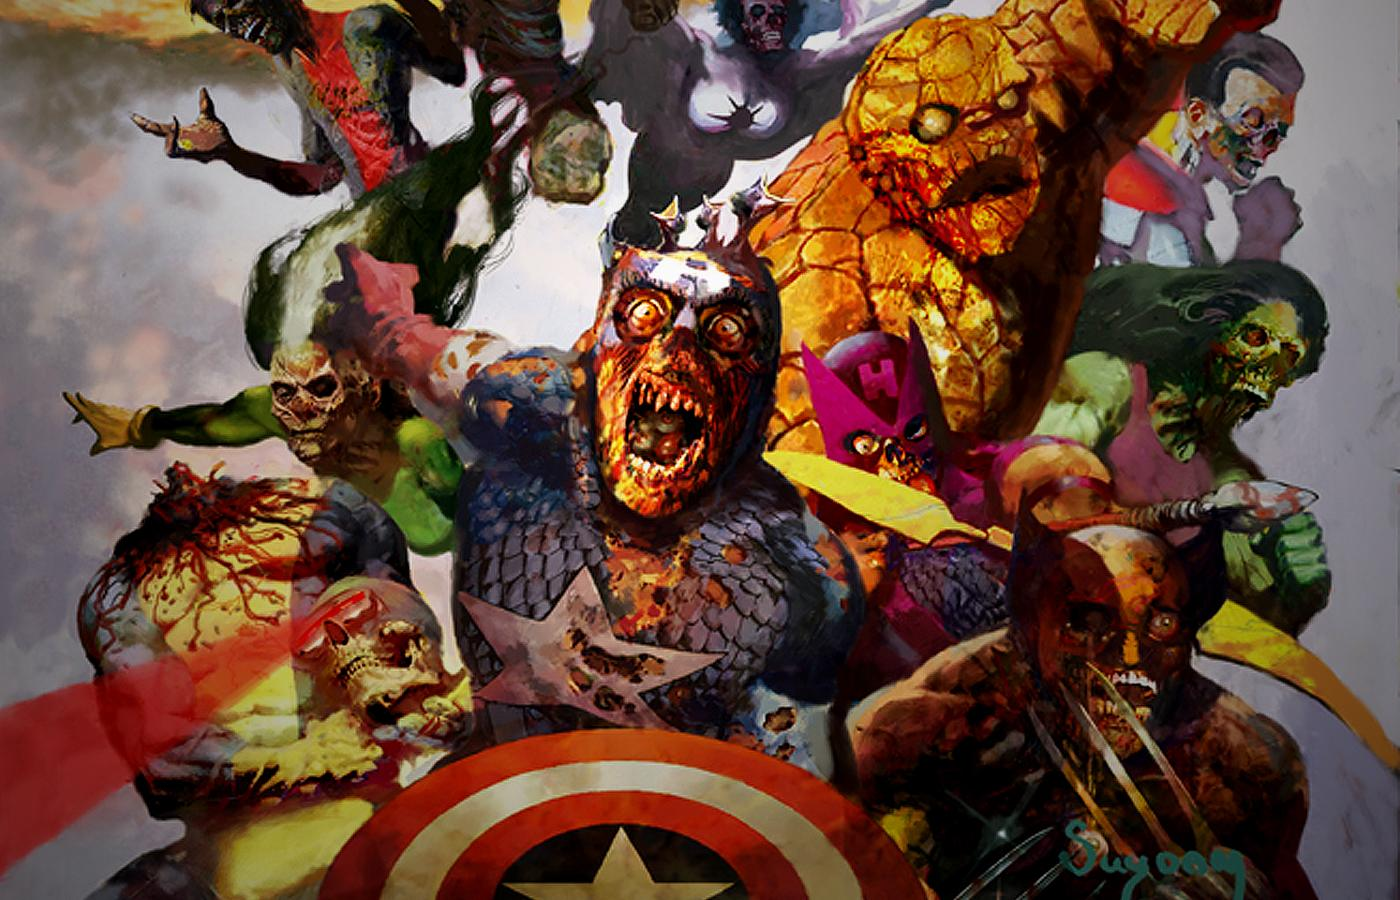 Halloween wallpaper marvel zombies secret war zombies